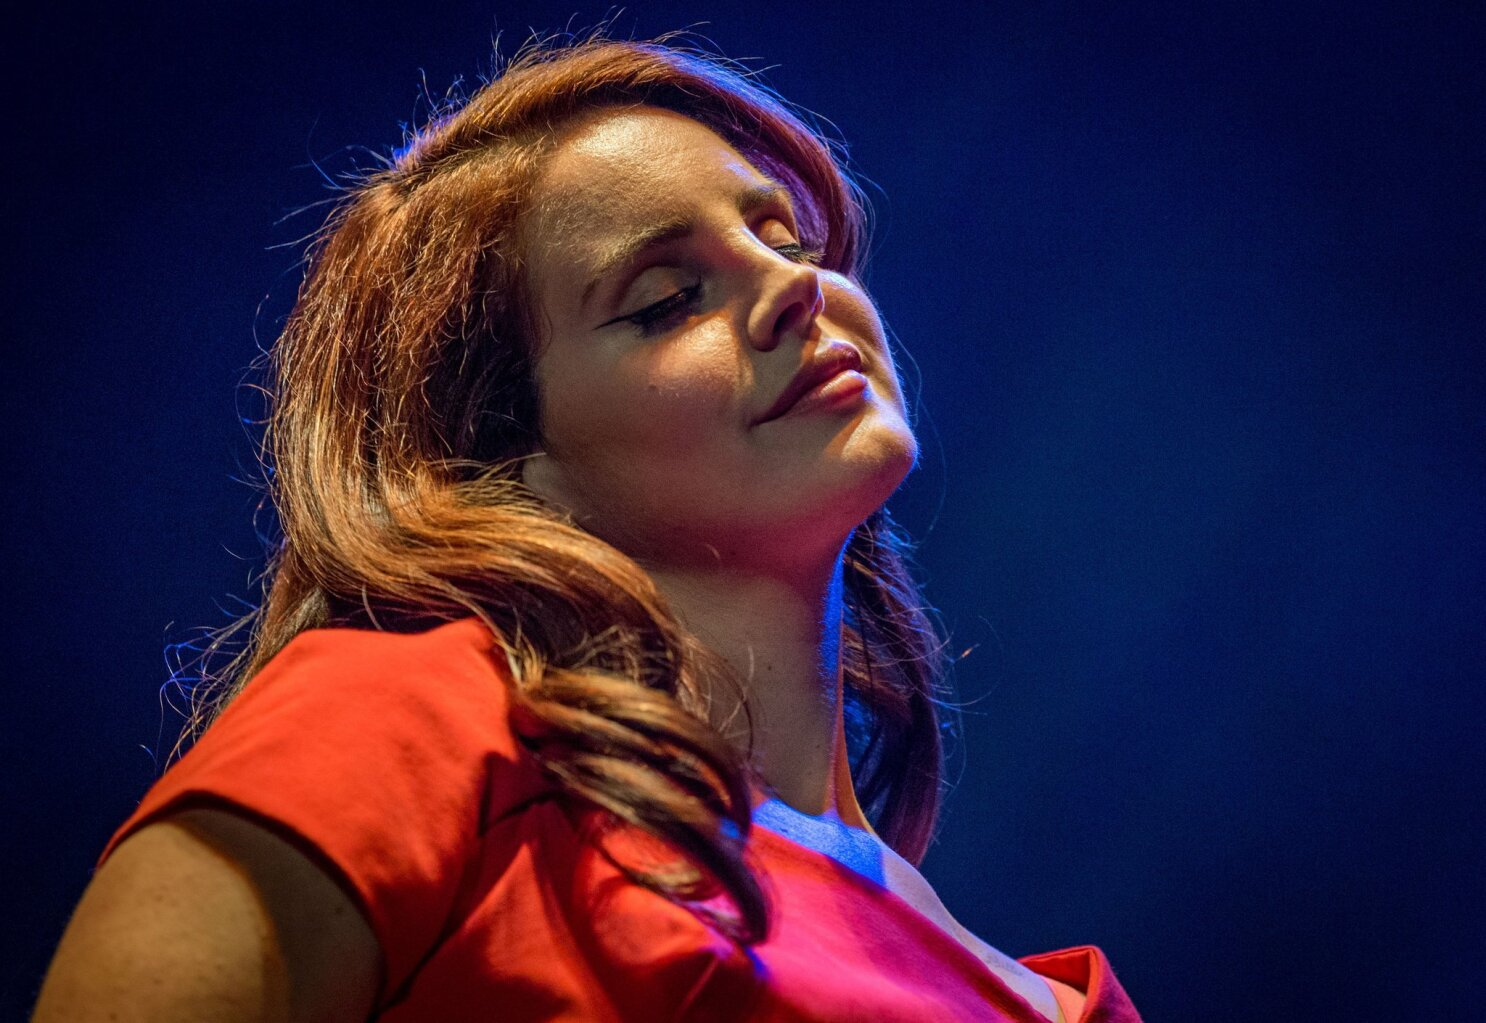 Lana Del Rey S See Through Mask Fires Up Twitter Critics Los Angeles Times